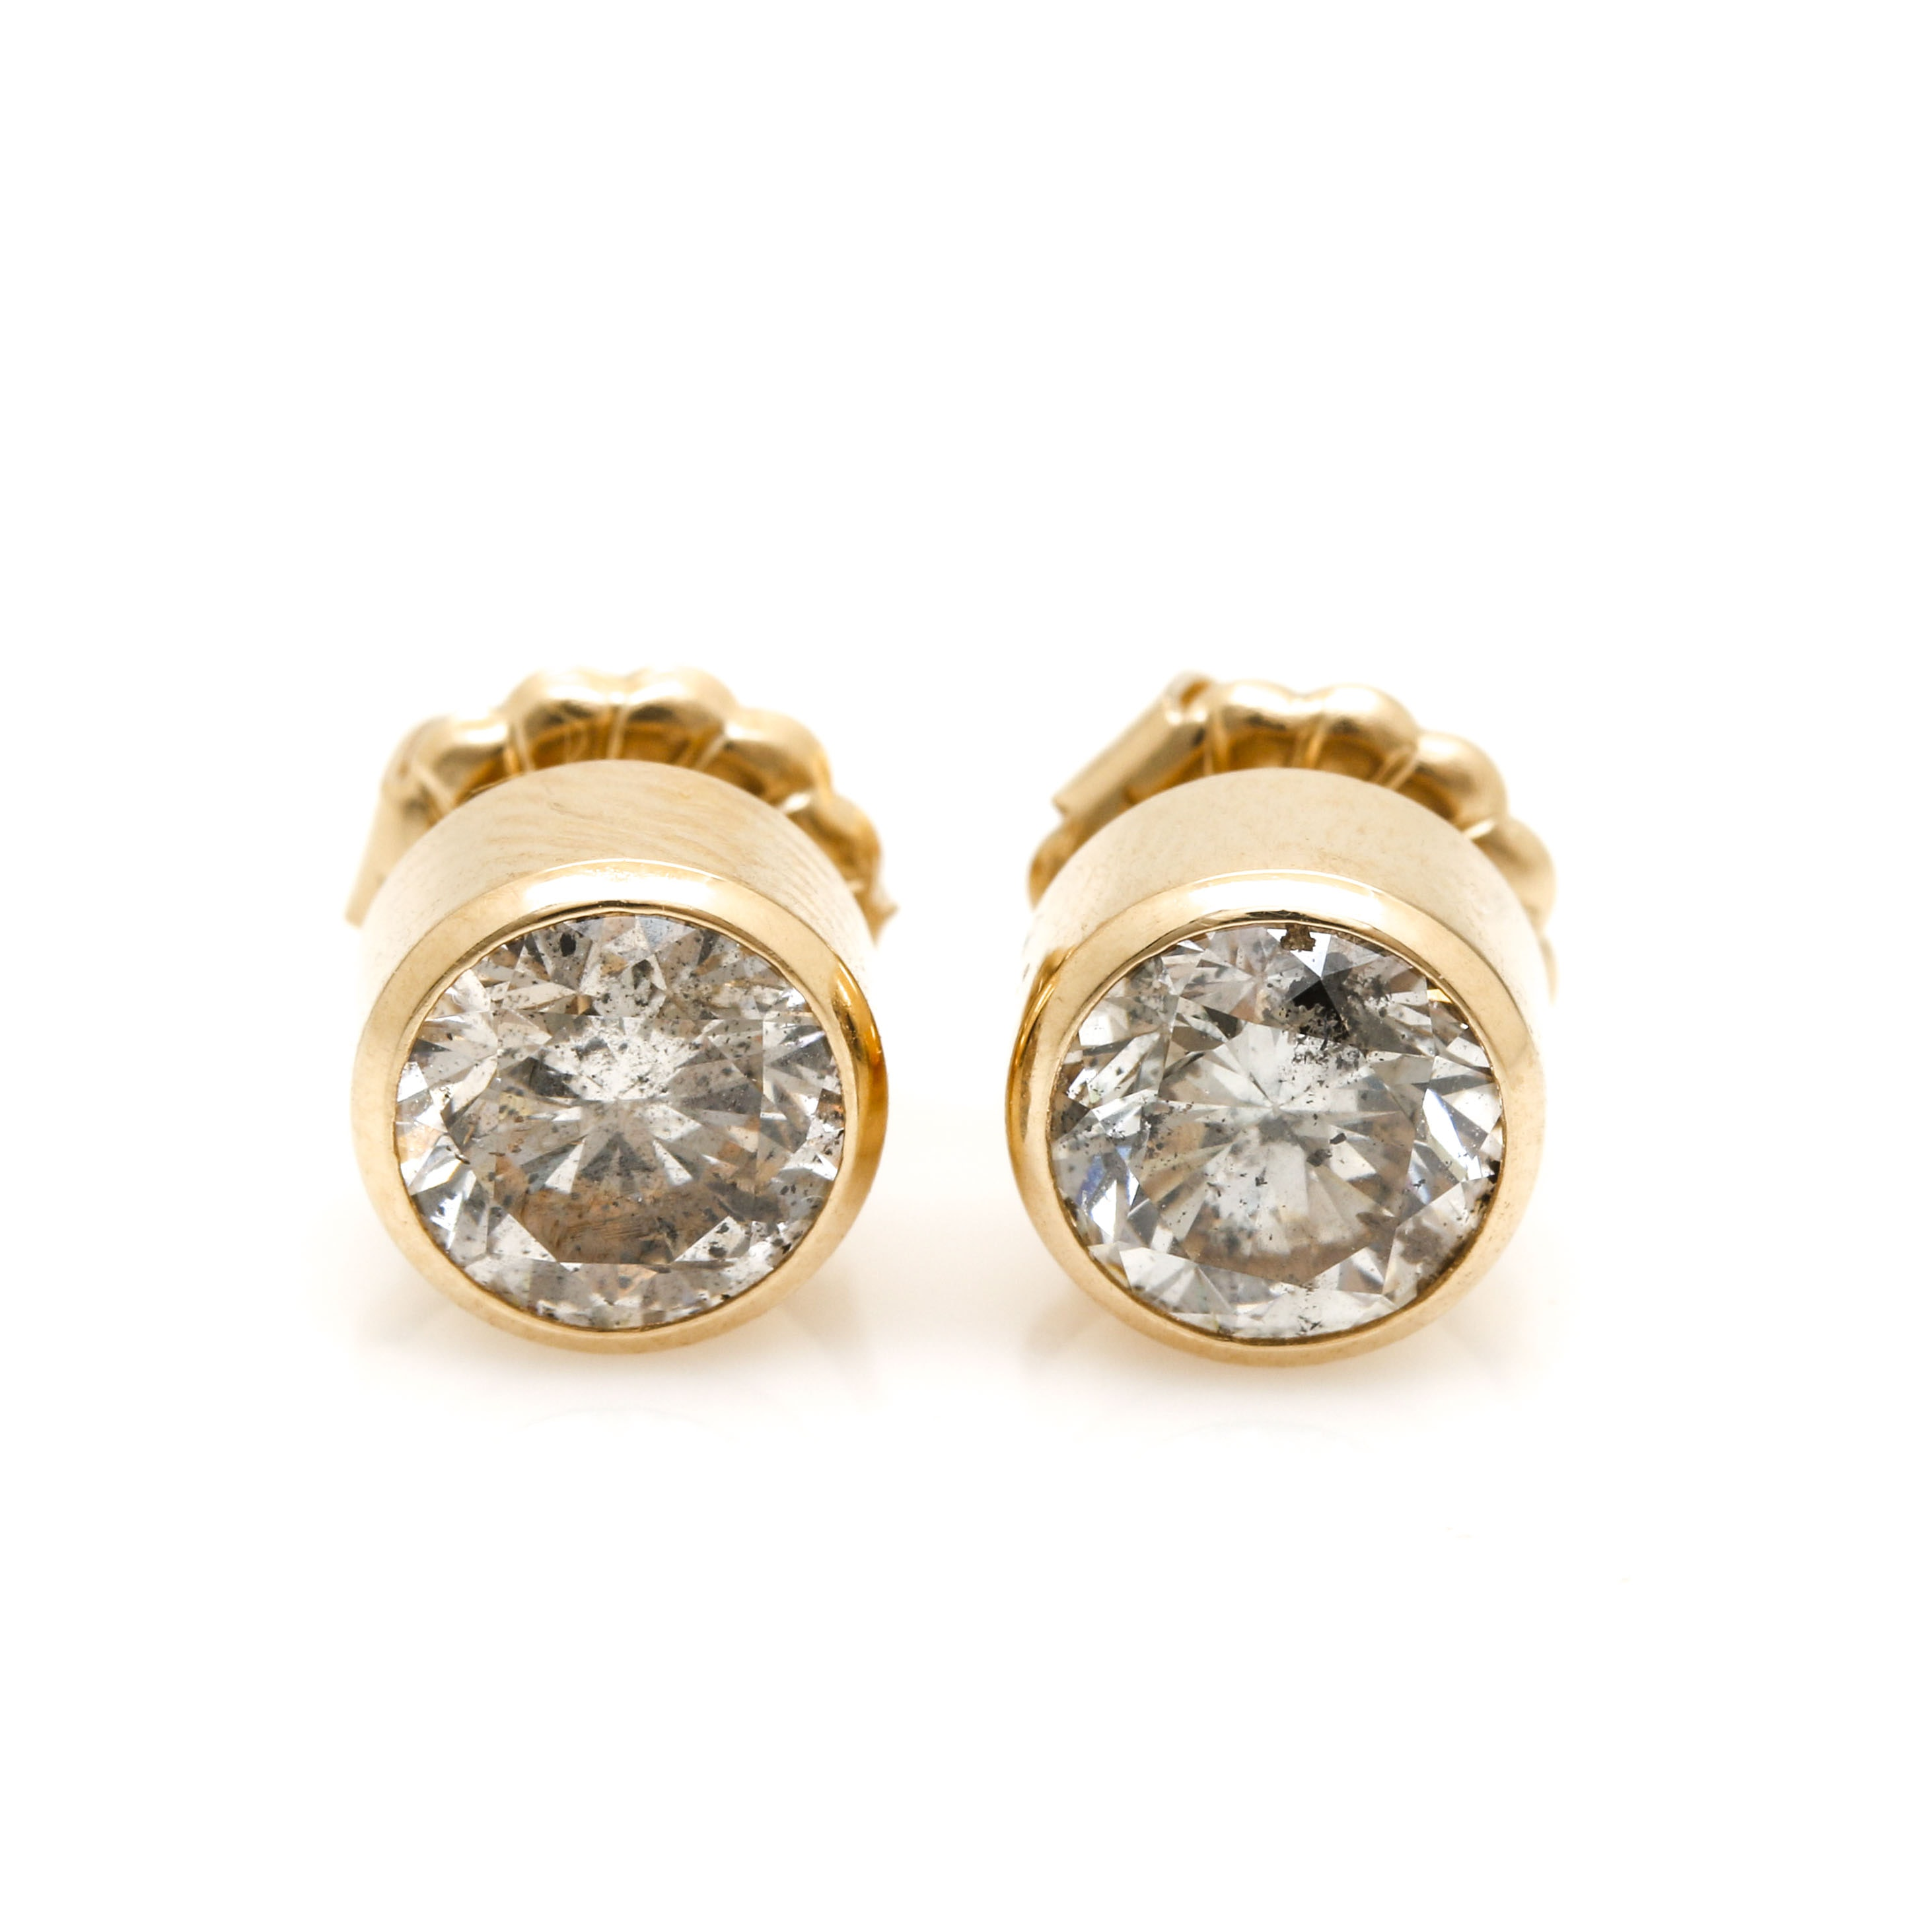 14K Yellow Gold 1.92 CTW Diamond Earrings